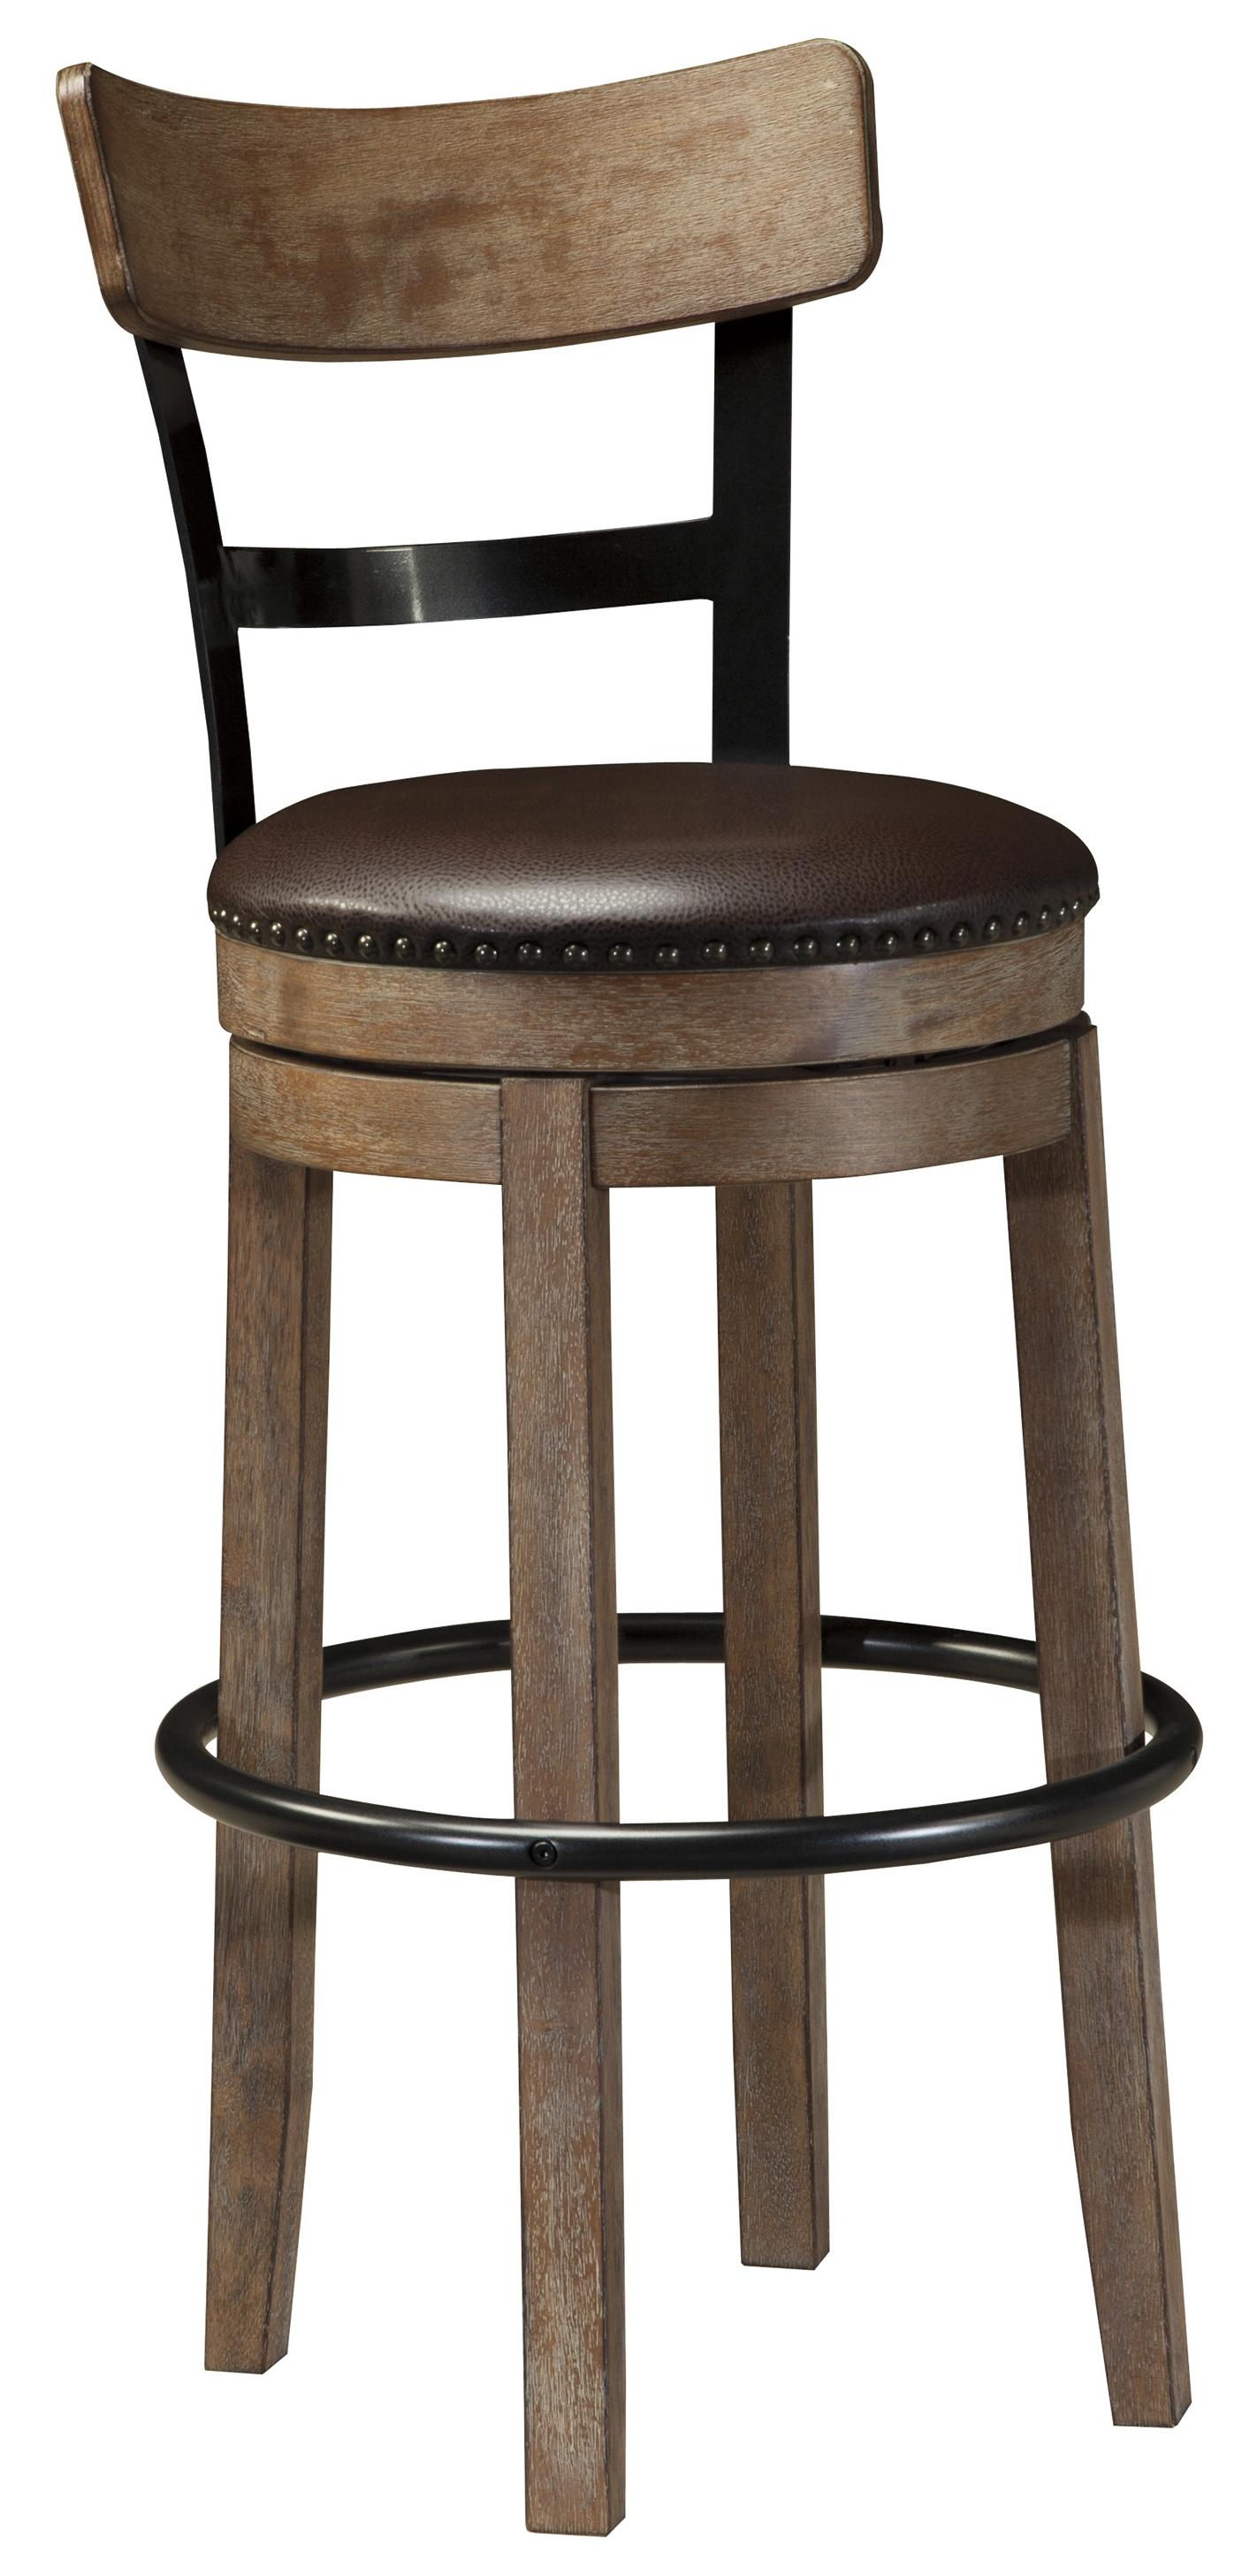 Signature Design By Ashley Pinnadel Tall Upholstered Swivel Barstool With Wood Metal Backrest